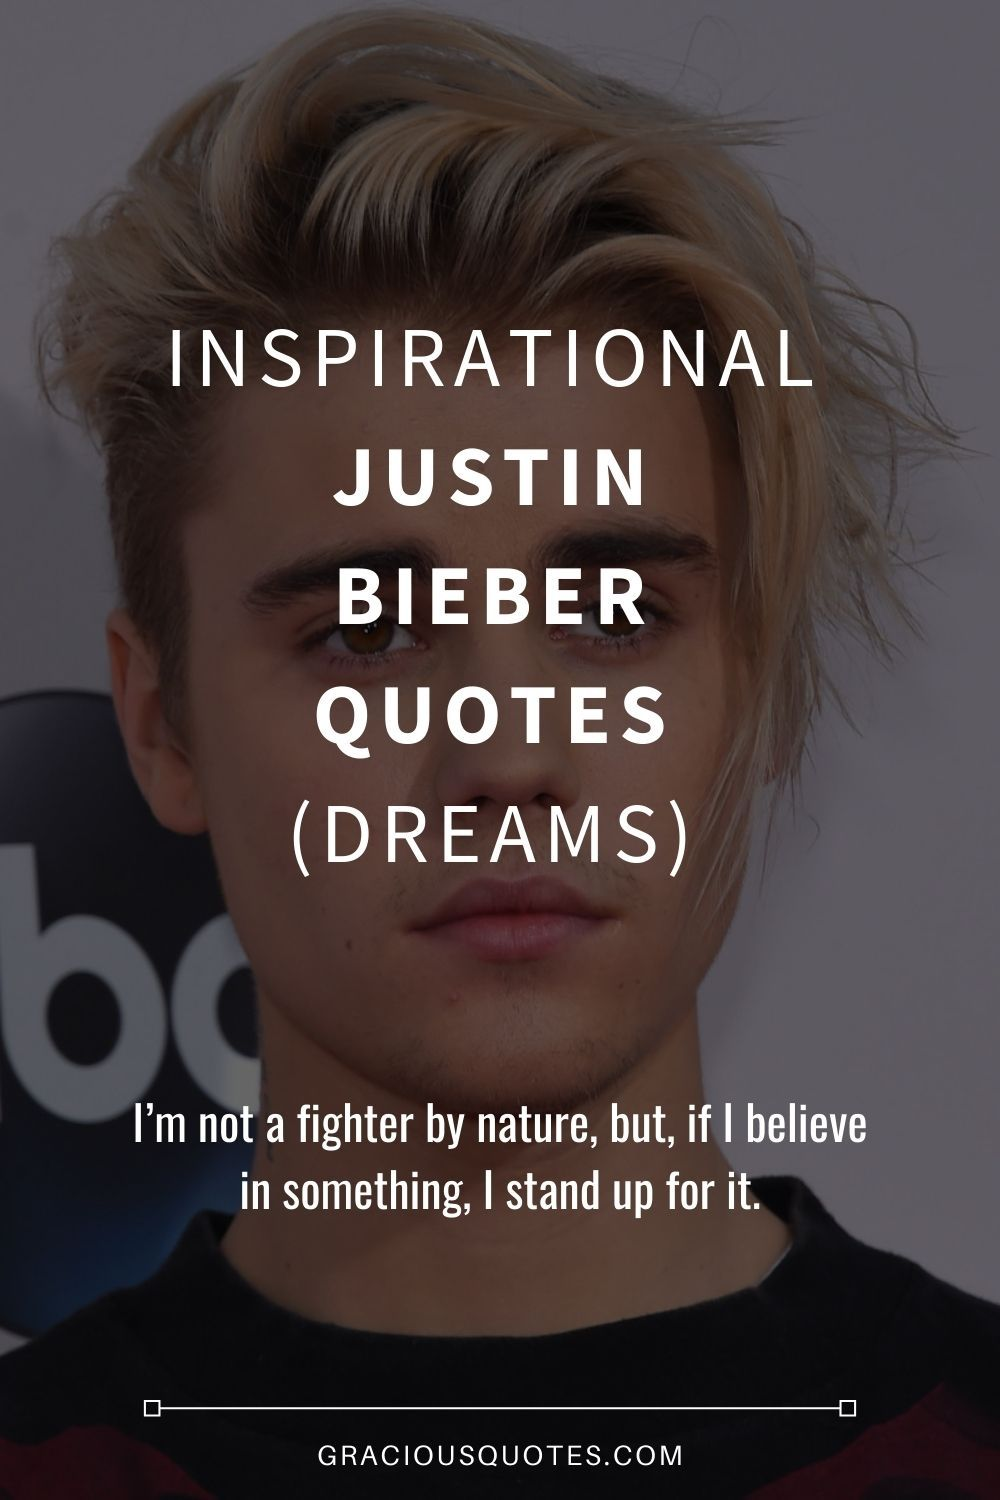 Inspirational Justin Bieber Quotes Dreams Gracious Quotes Justin Bieber Quotes Justin Bieber Image Quotes